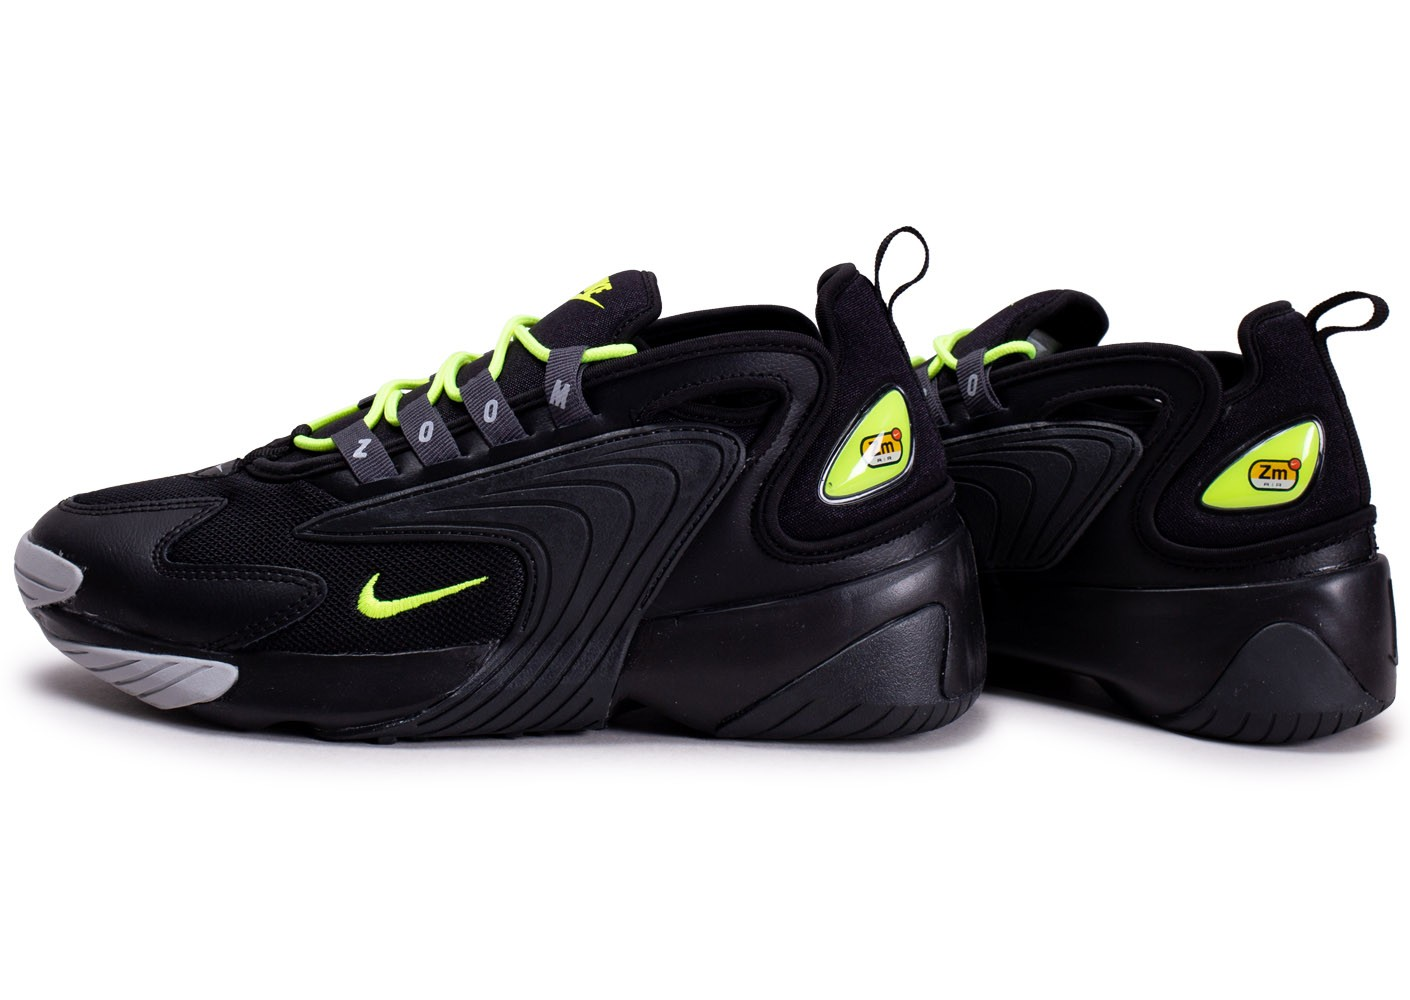 Nike Zoom 2K noire et jaune fluo Chaussures Baskets homme